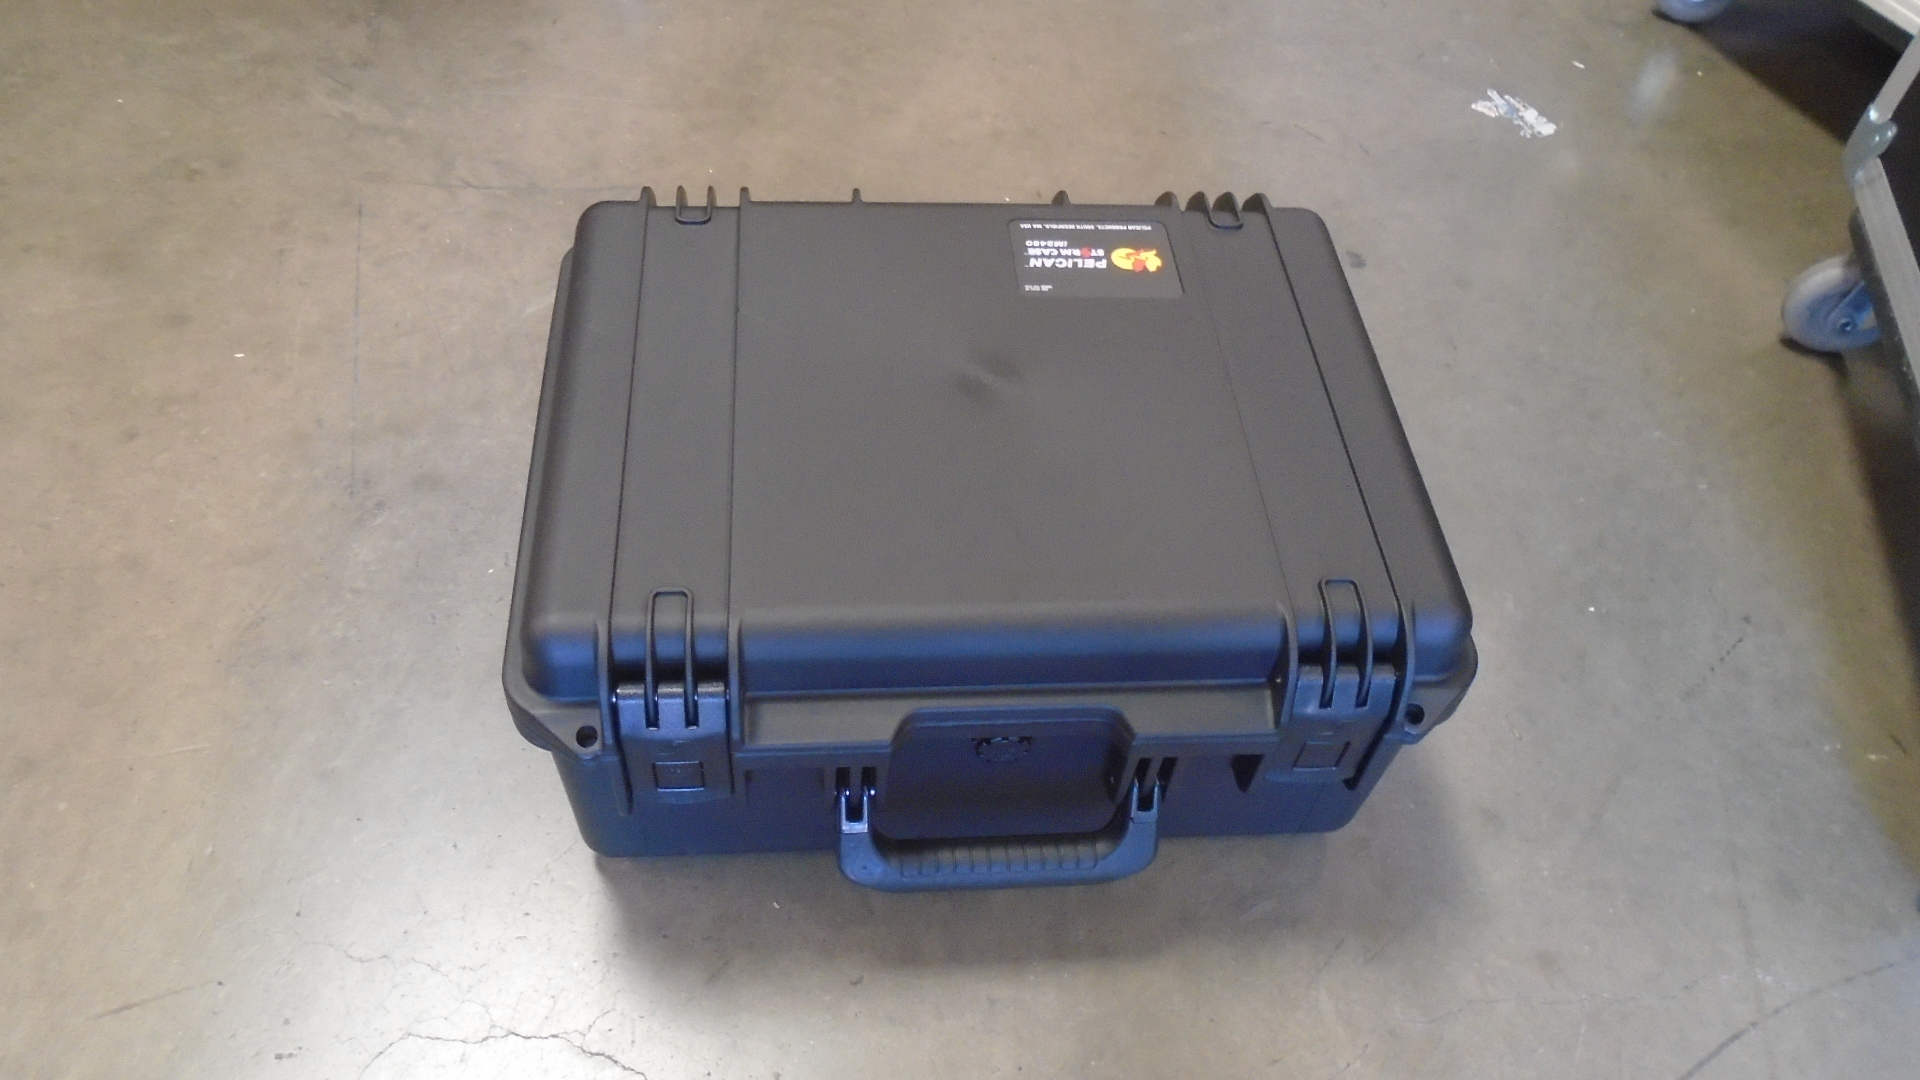 Print # 7720 - Pelican Storm iM2450 Case Retrofitted for Shut Kit G By Nelson Case Corp